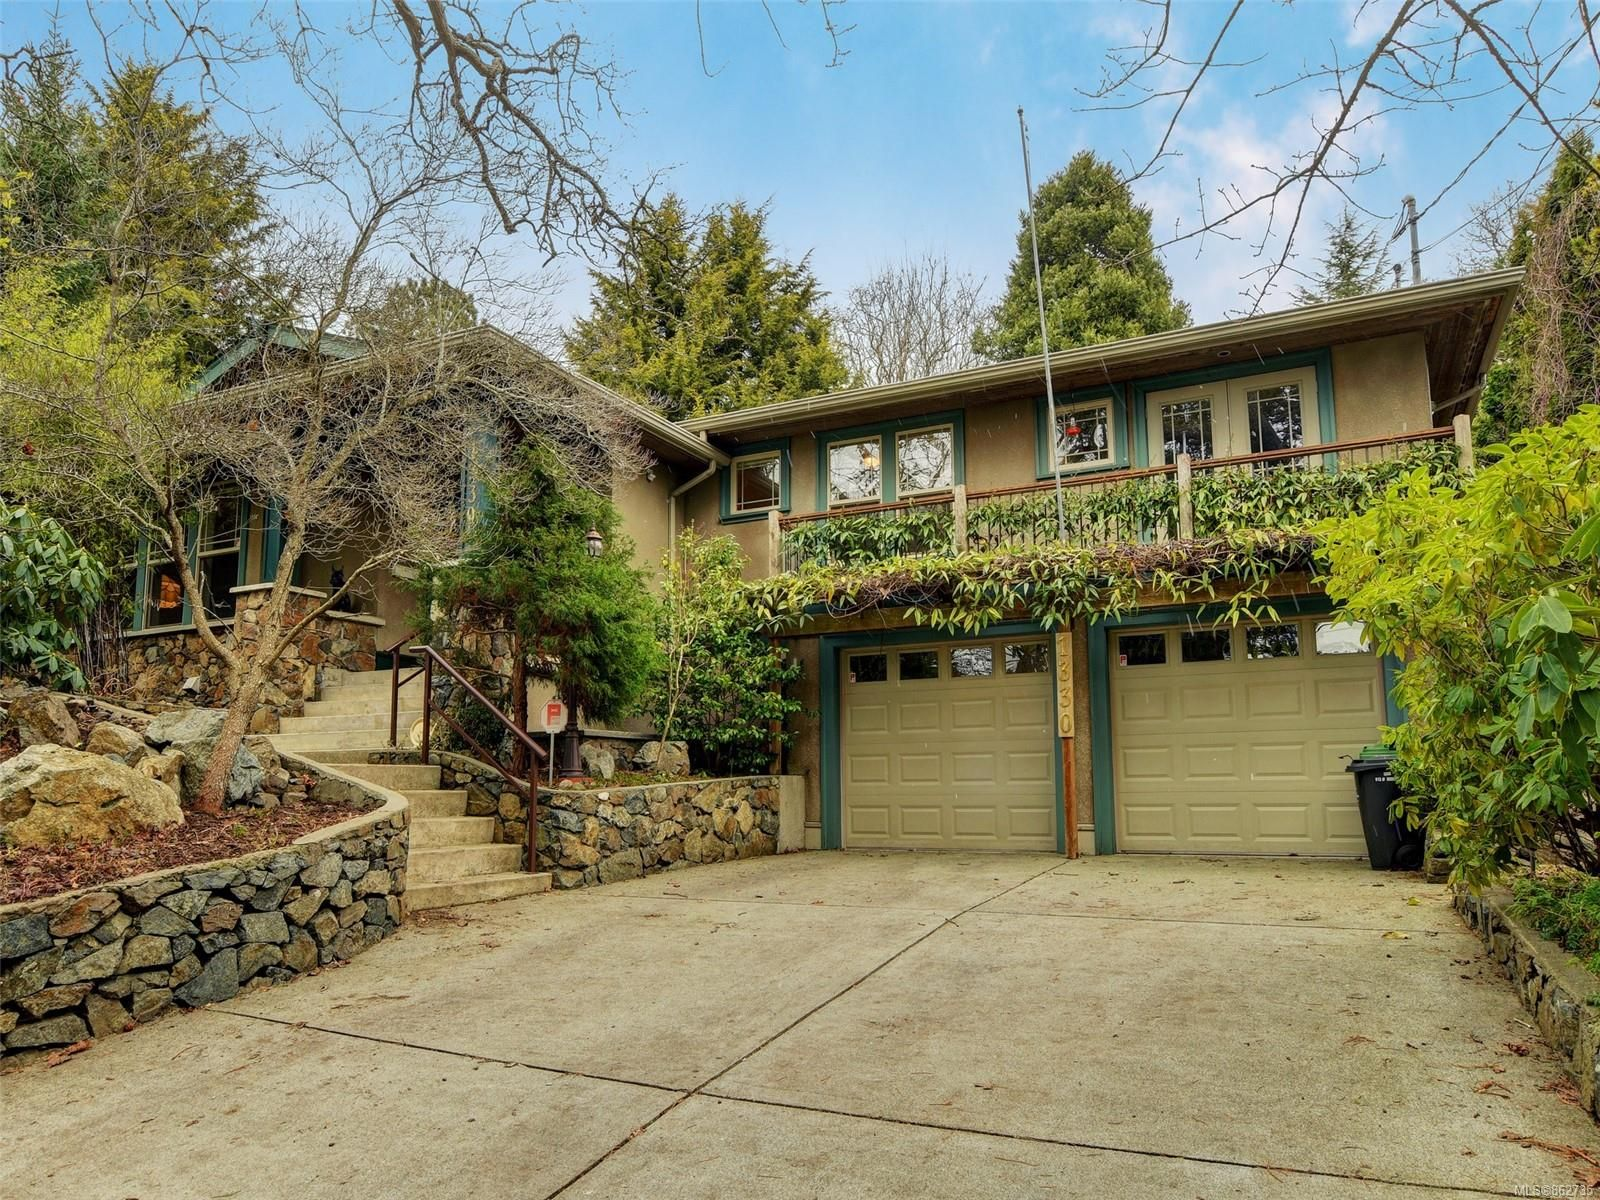 Main Photo: 1330 ROCKLAND Ave in : Vi Rockland House for sale (Victoria)  : MLS®# 862735